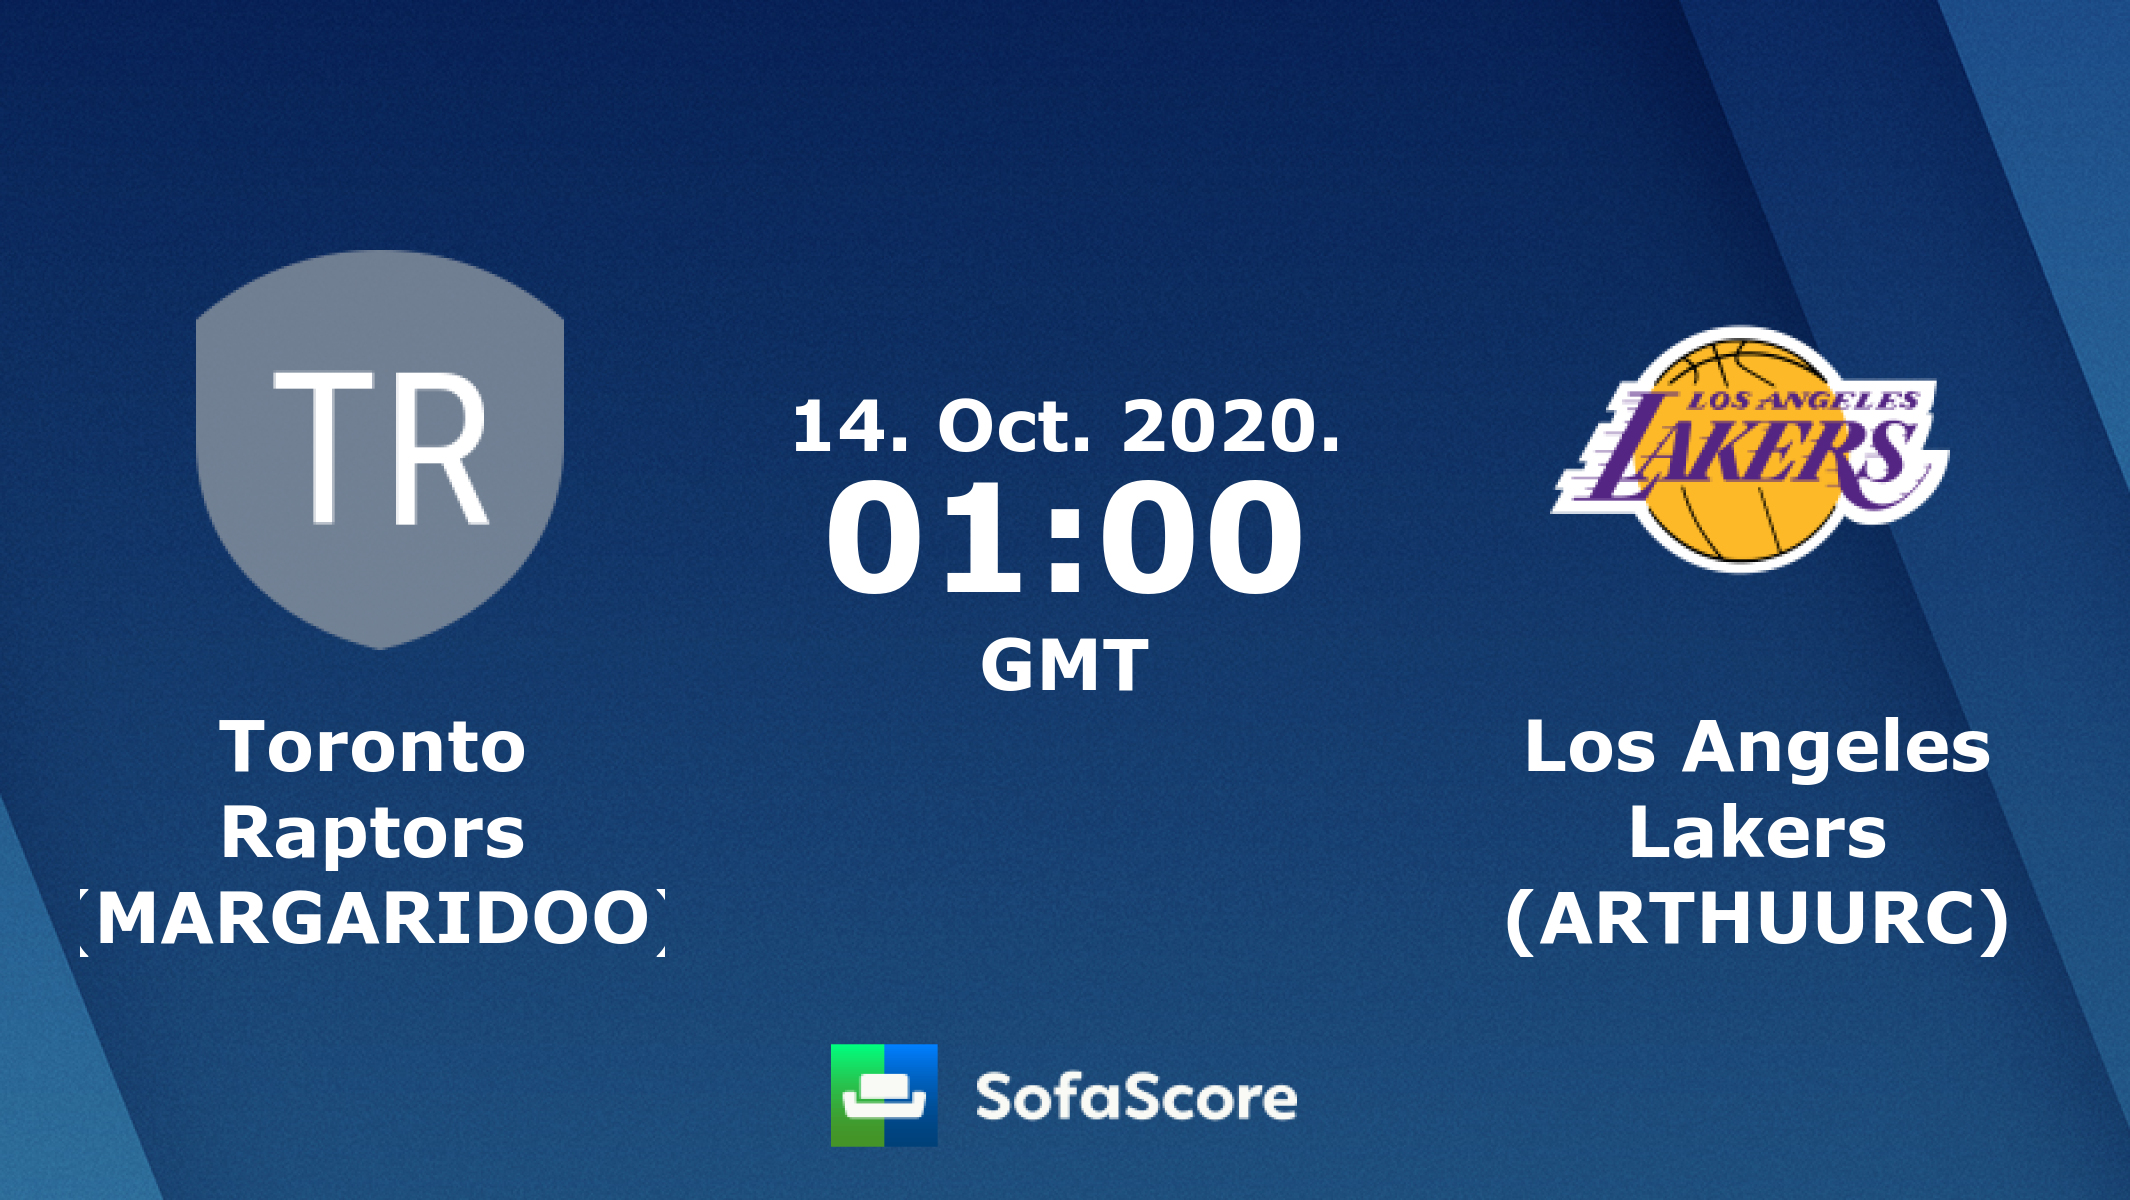 Toronto Raptors (MARGARIDOO) Los Angeles Lakers (ARTHUURC) live score,  video stream and H2H results - SofaScore